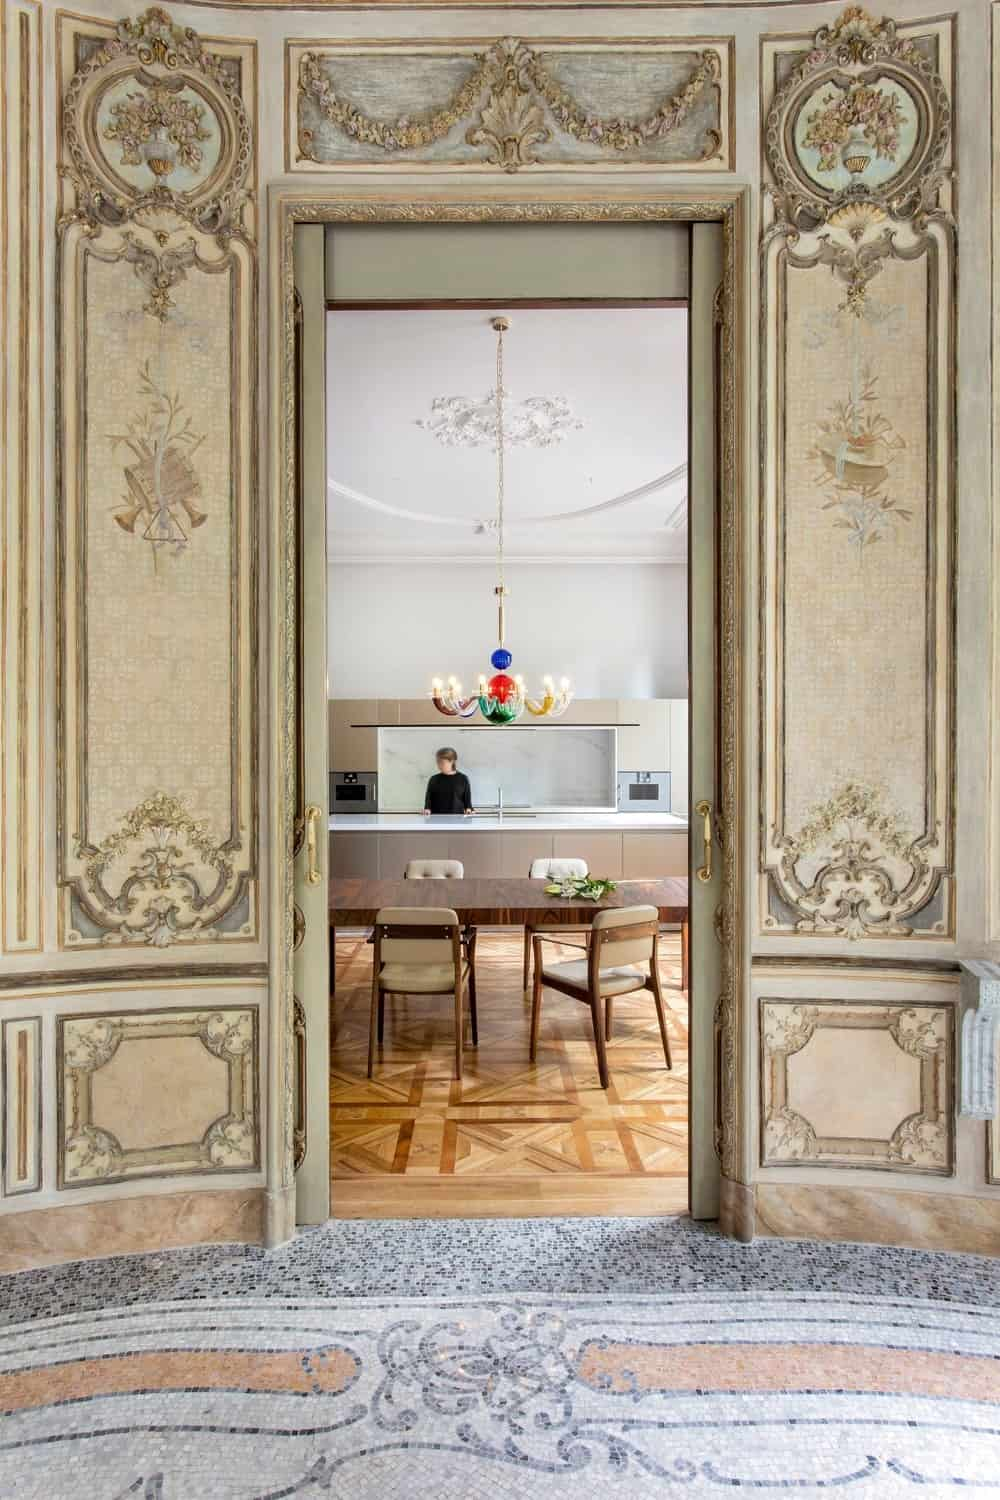 View of the dine-in kitchen from the rotunda foyer in the Casa Burés designed by Estudio VILABLANCH + TDB Arquitectura.